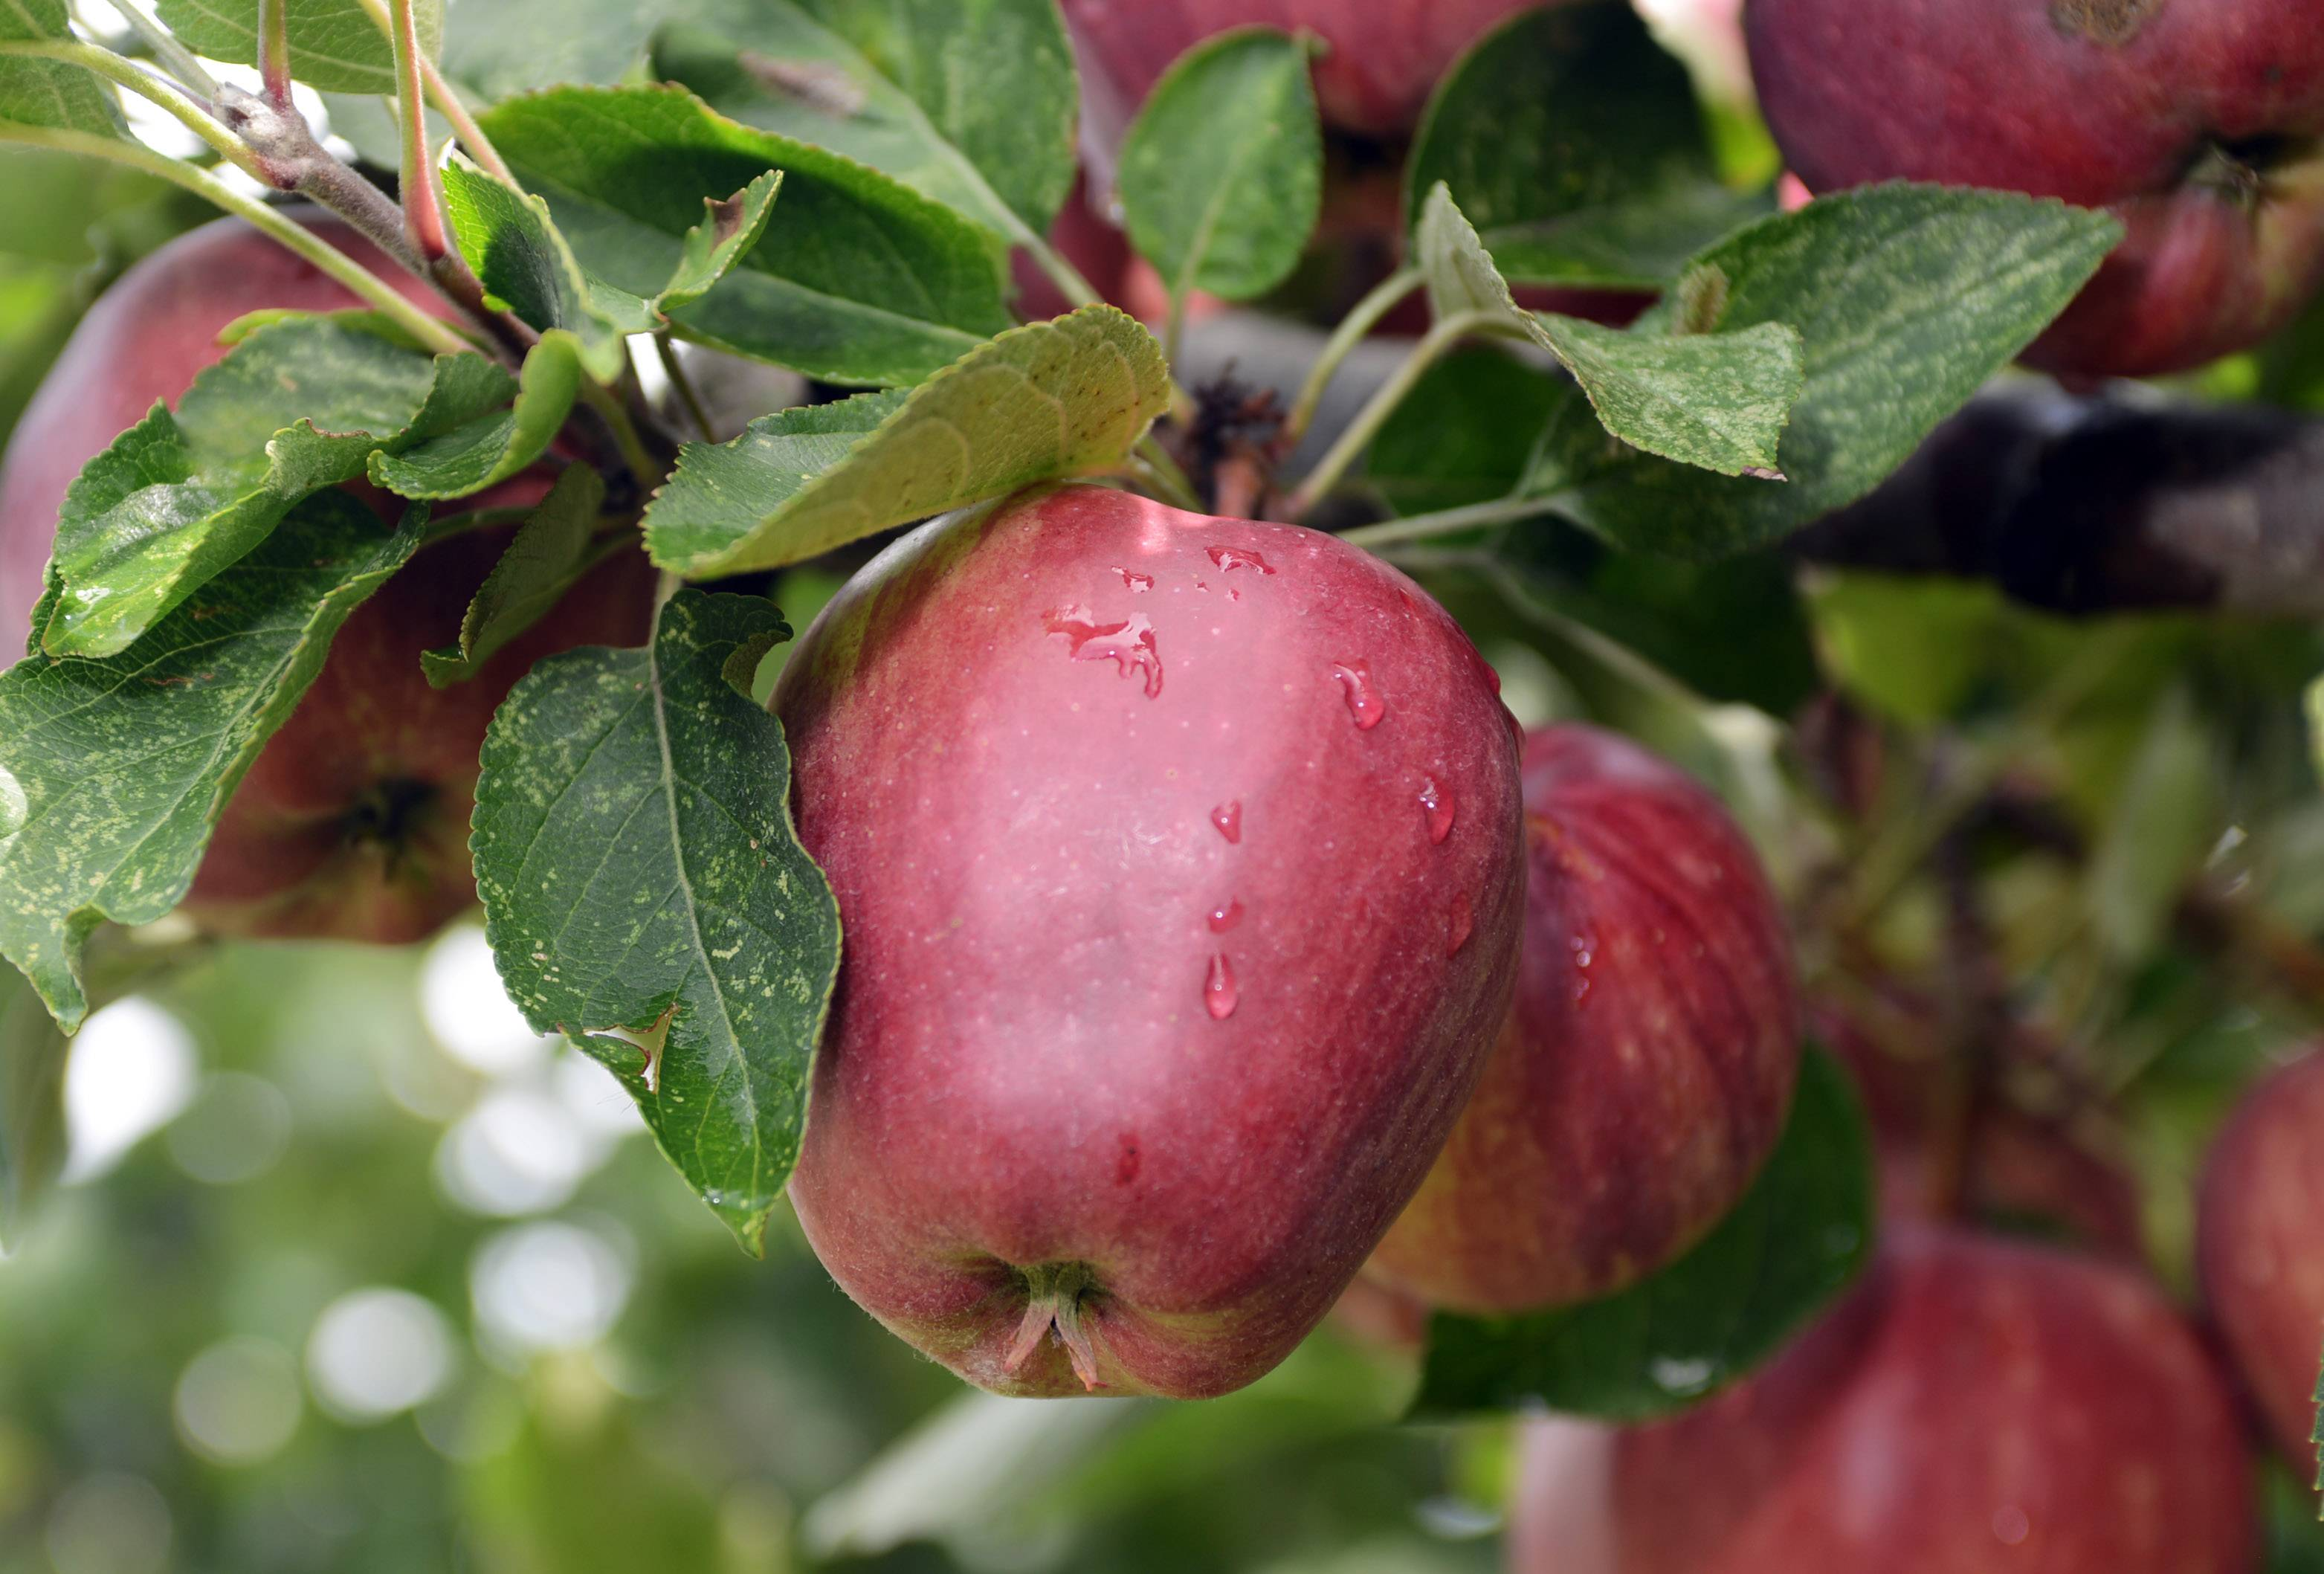 Double Red Delicious apples are ready to be picked at Ziegler's Apple Orchard in Grayslake.